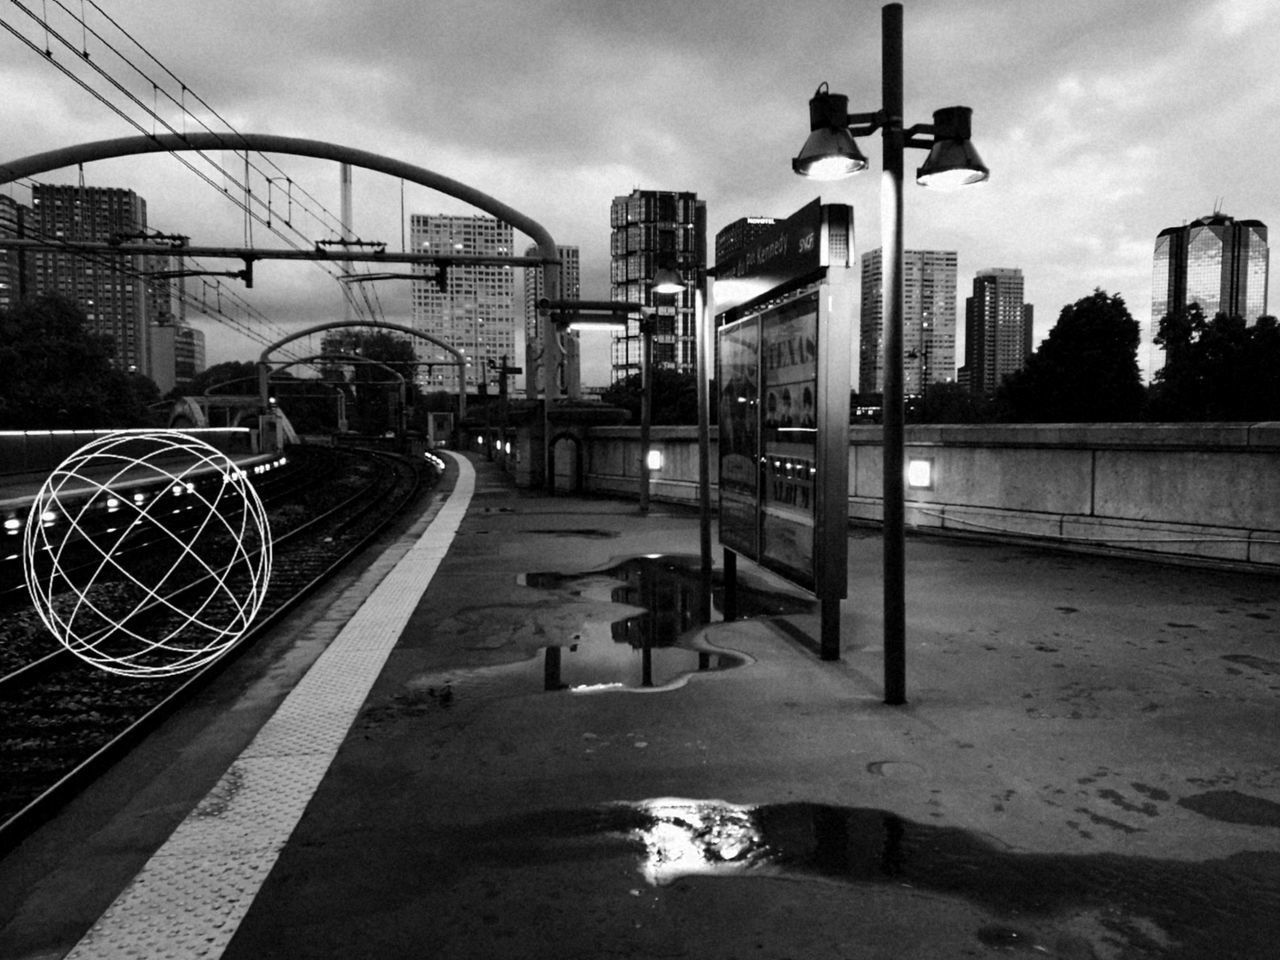 Blackandwhite Outdoors No People City Sky Architecture Buildings Train Station Ball Streetphotography City Life Capital Cities  Paris, France  Honor8